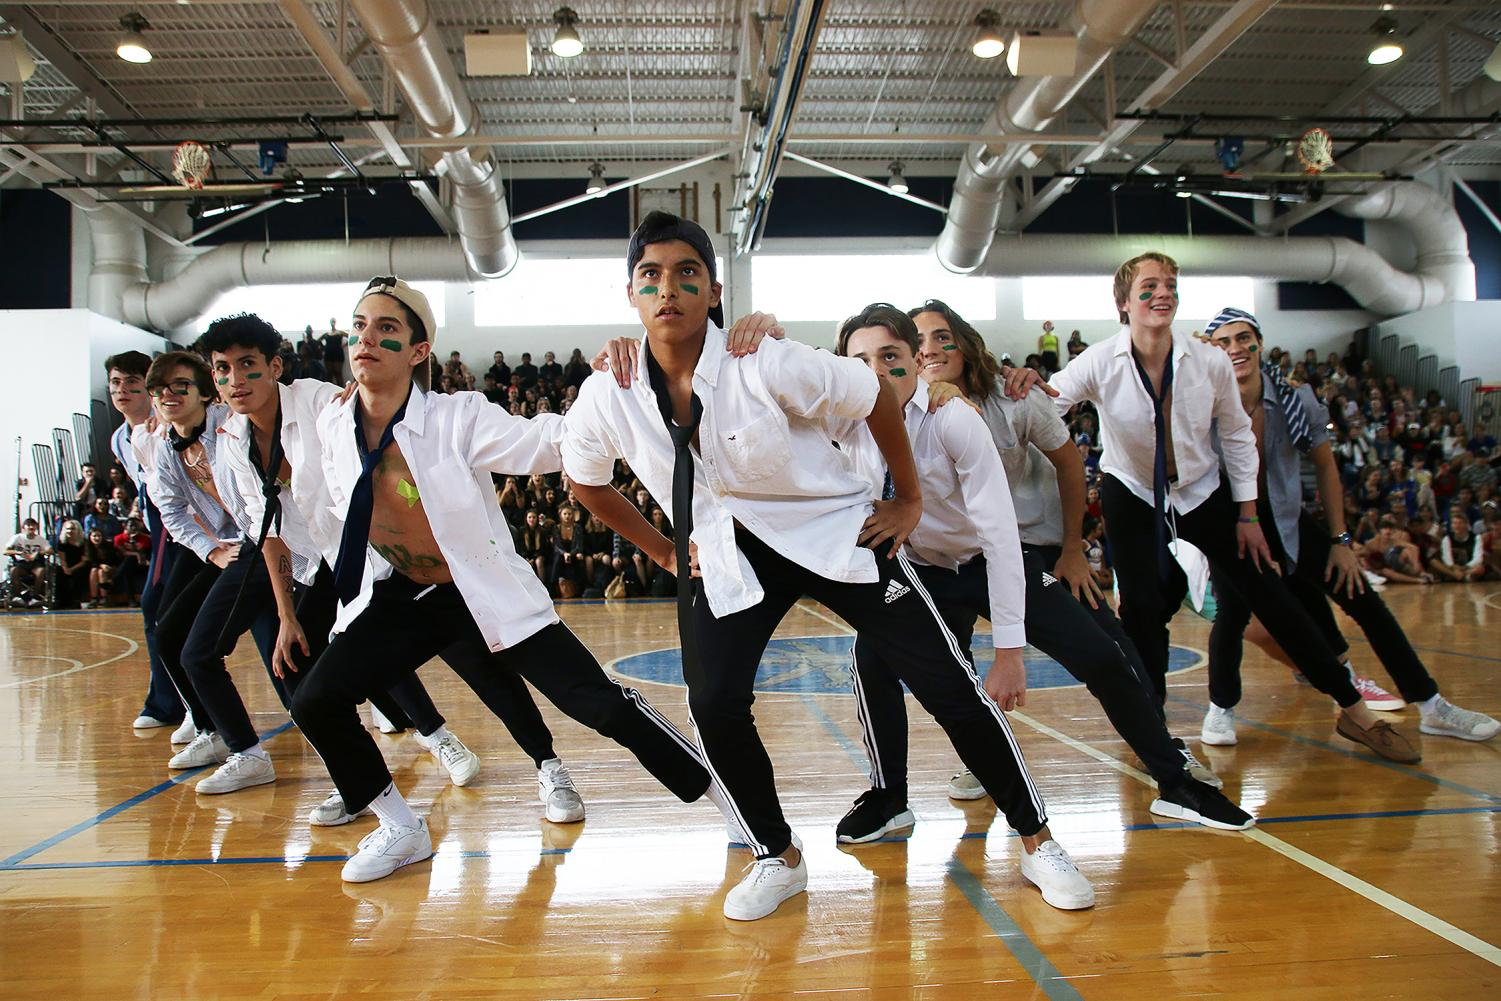 """Visual sophomore Sergio Aries guides his fellow """"cheerleaders"""" into the next dance move, as the crowd cheers them on. The sophomores placed third overall in the powderpuff cheerleading competition."""